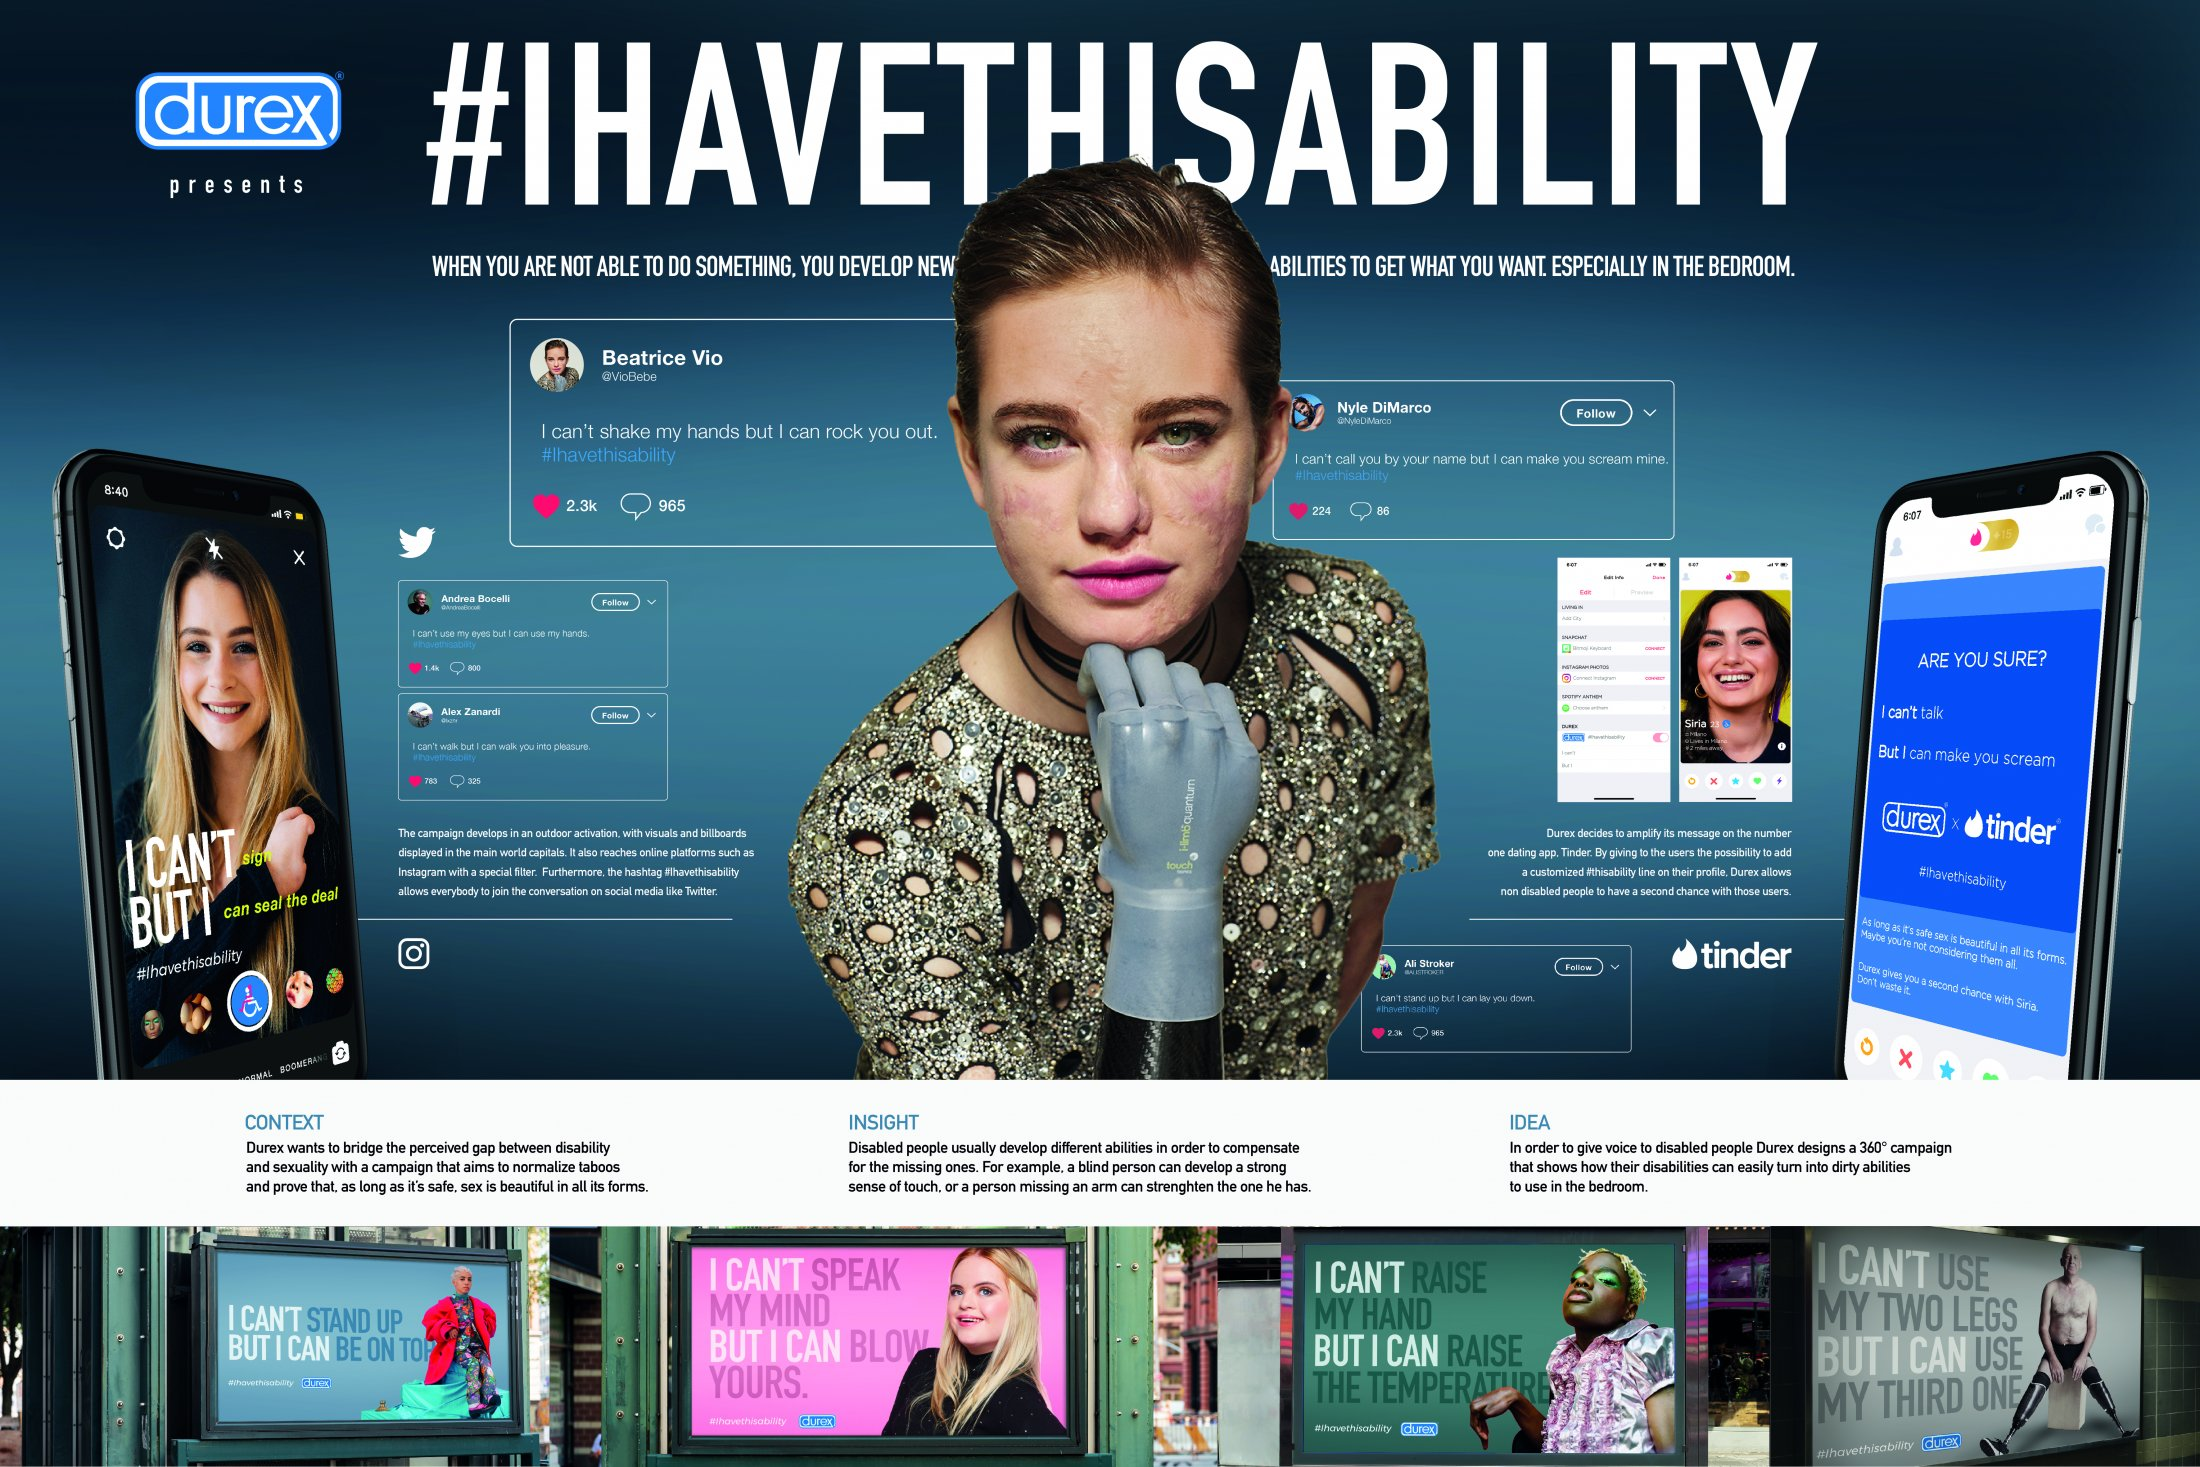 Thumbnail for  I HAVE THISABILITY